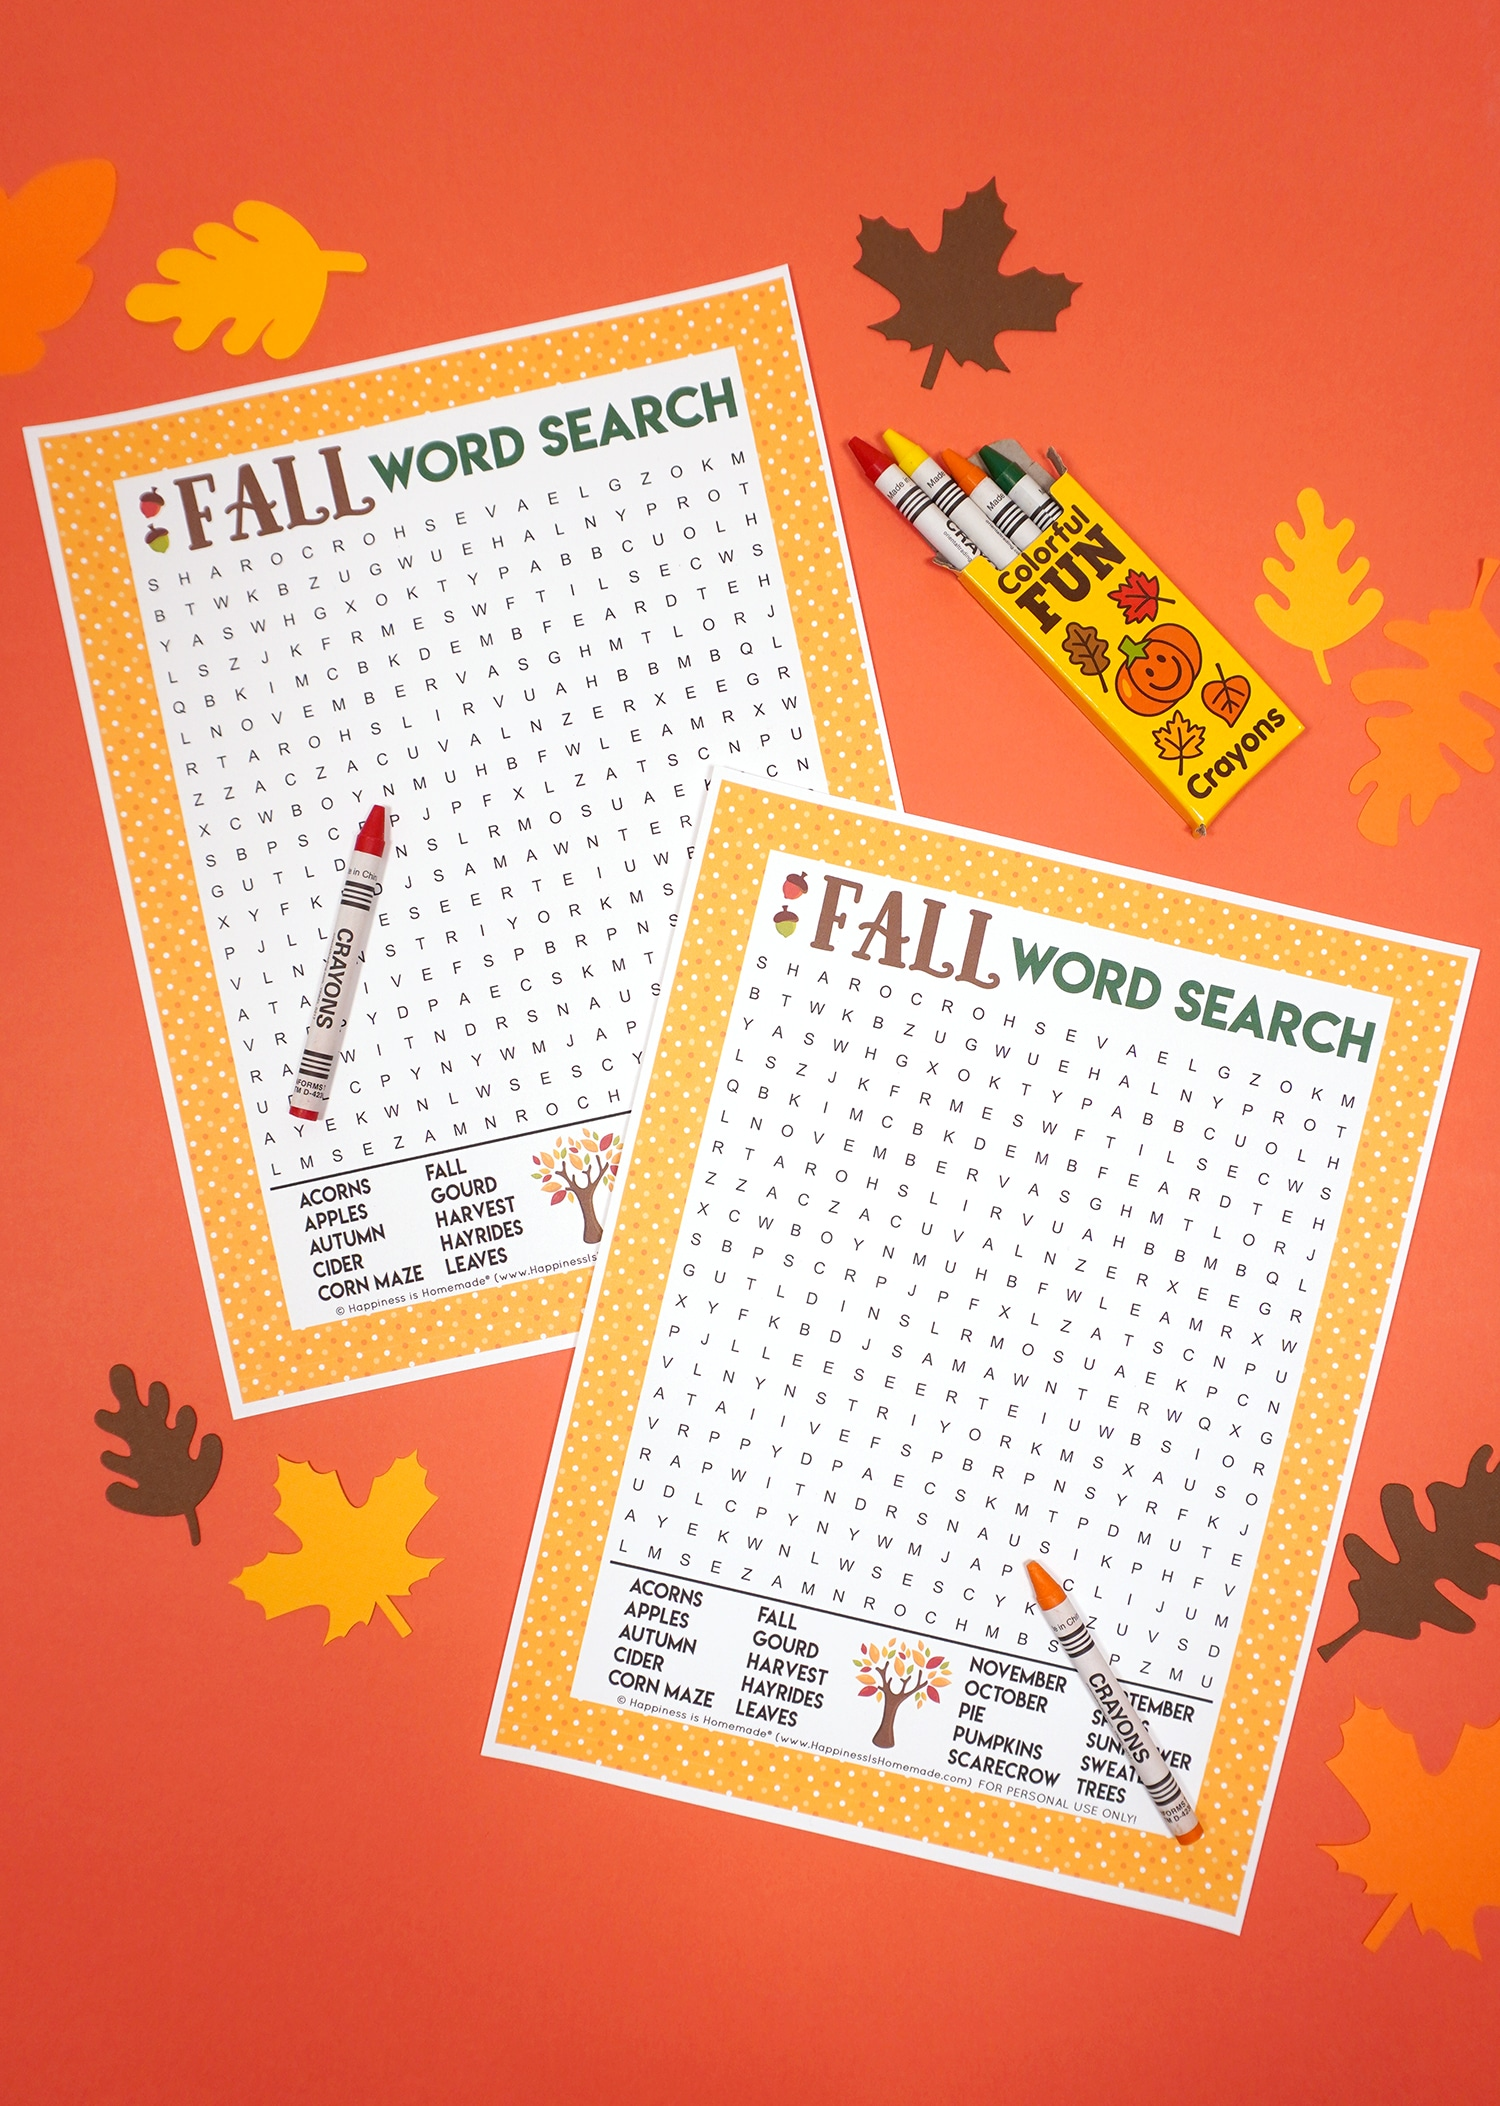 Fall Word Search Printable on dark orange background with box of crayons surrounded by paper leaves